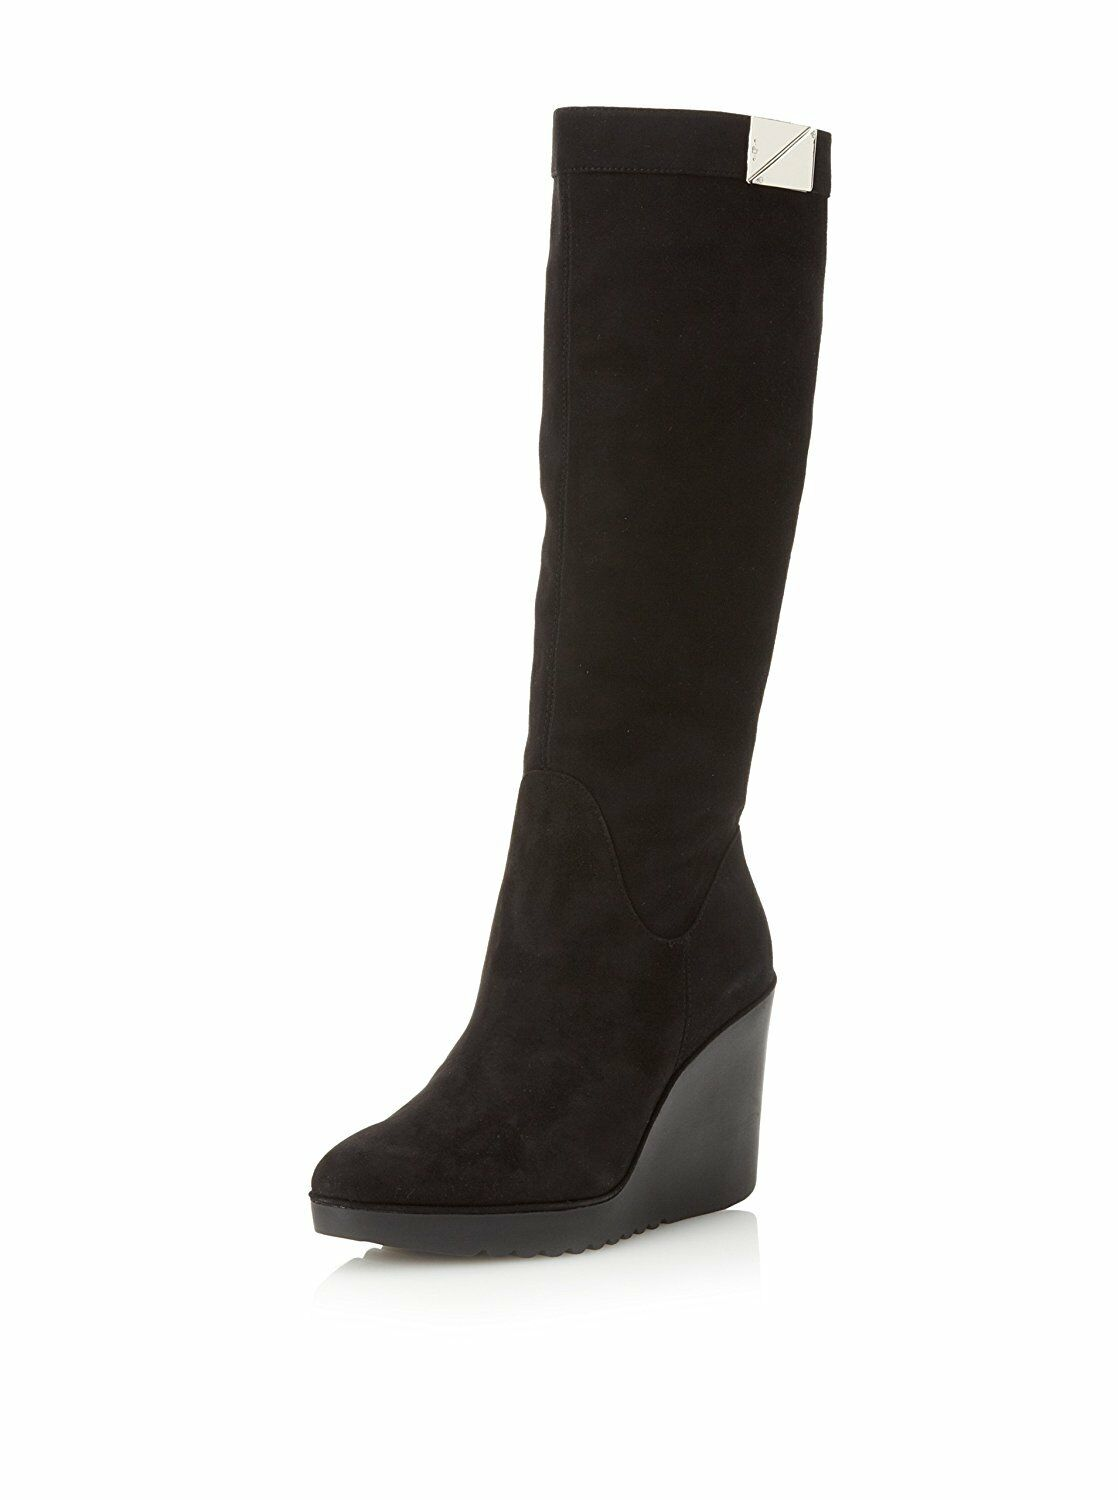 Donald J Pliner Women's Iliya Knee-High Boot